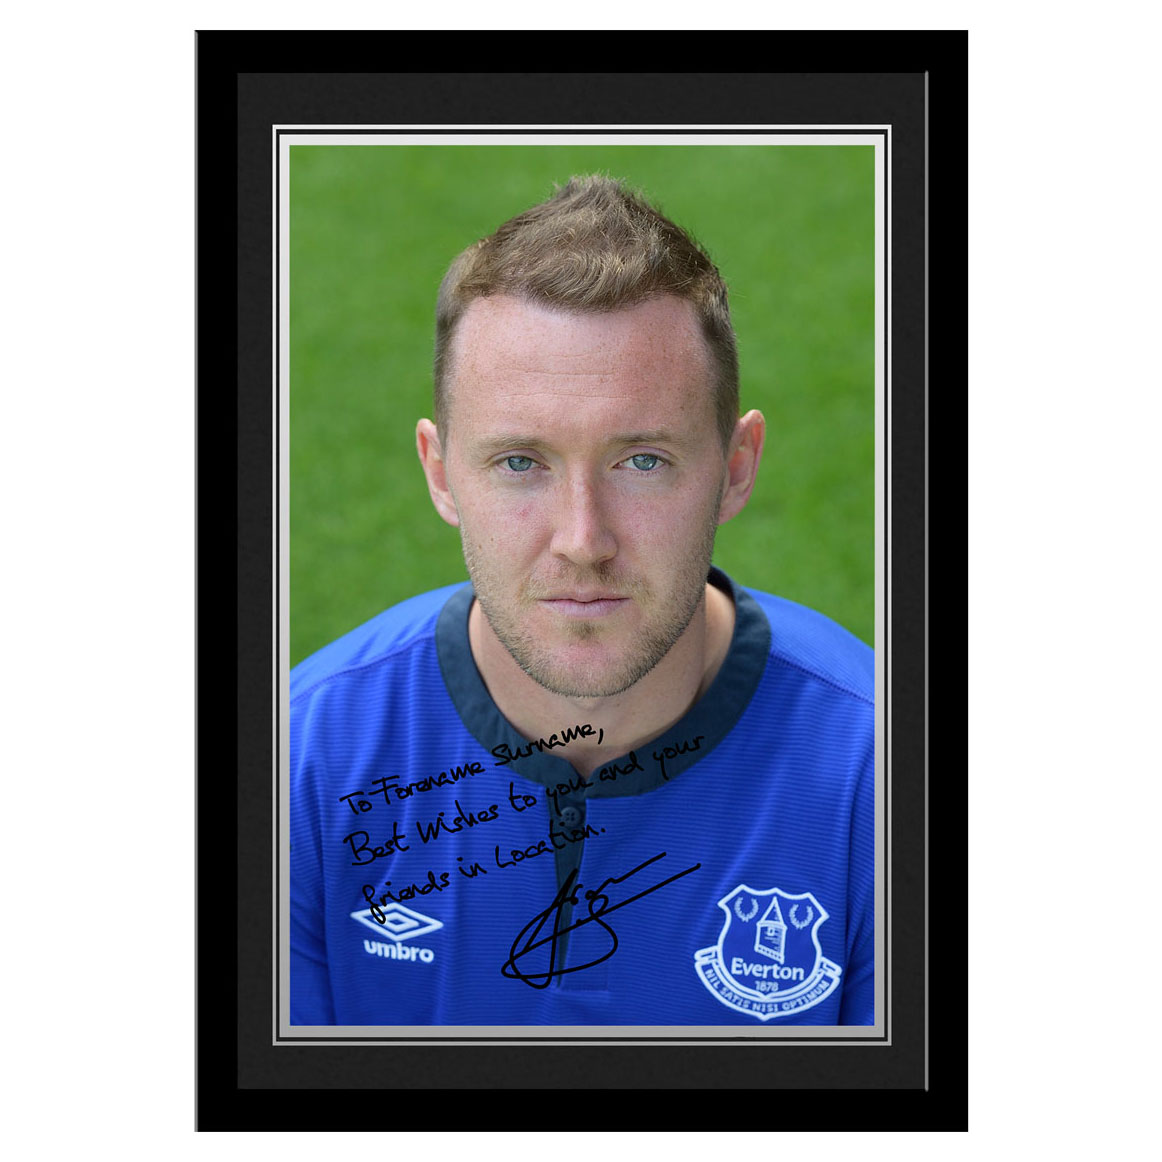 Everton Personalised Signature Photo Framed - McGeady